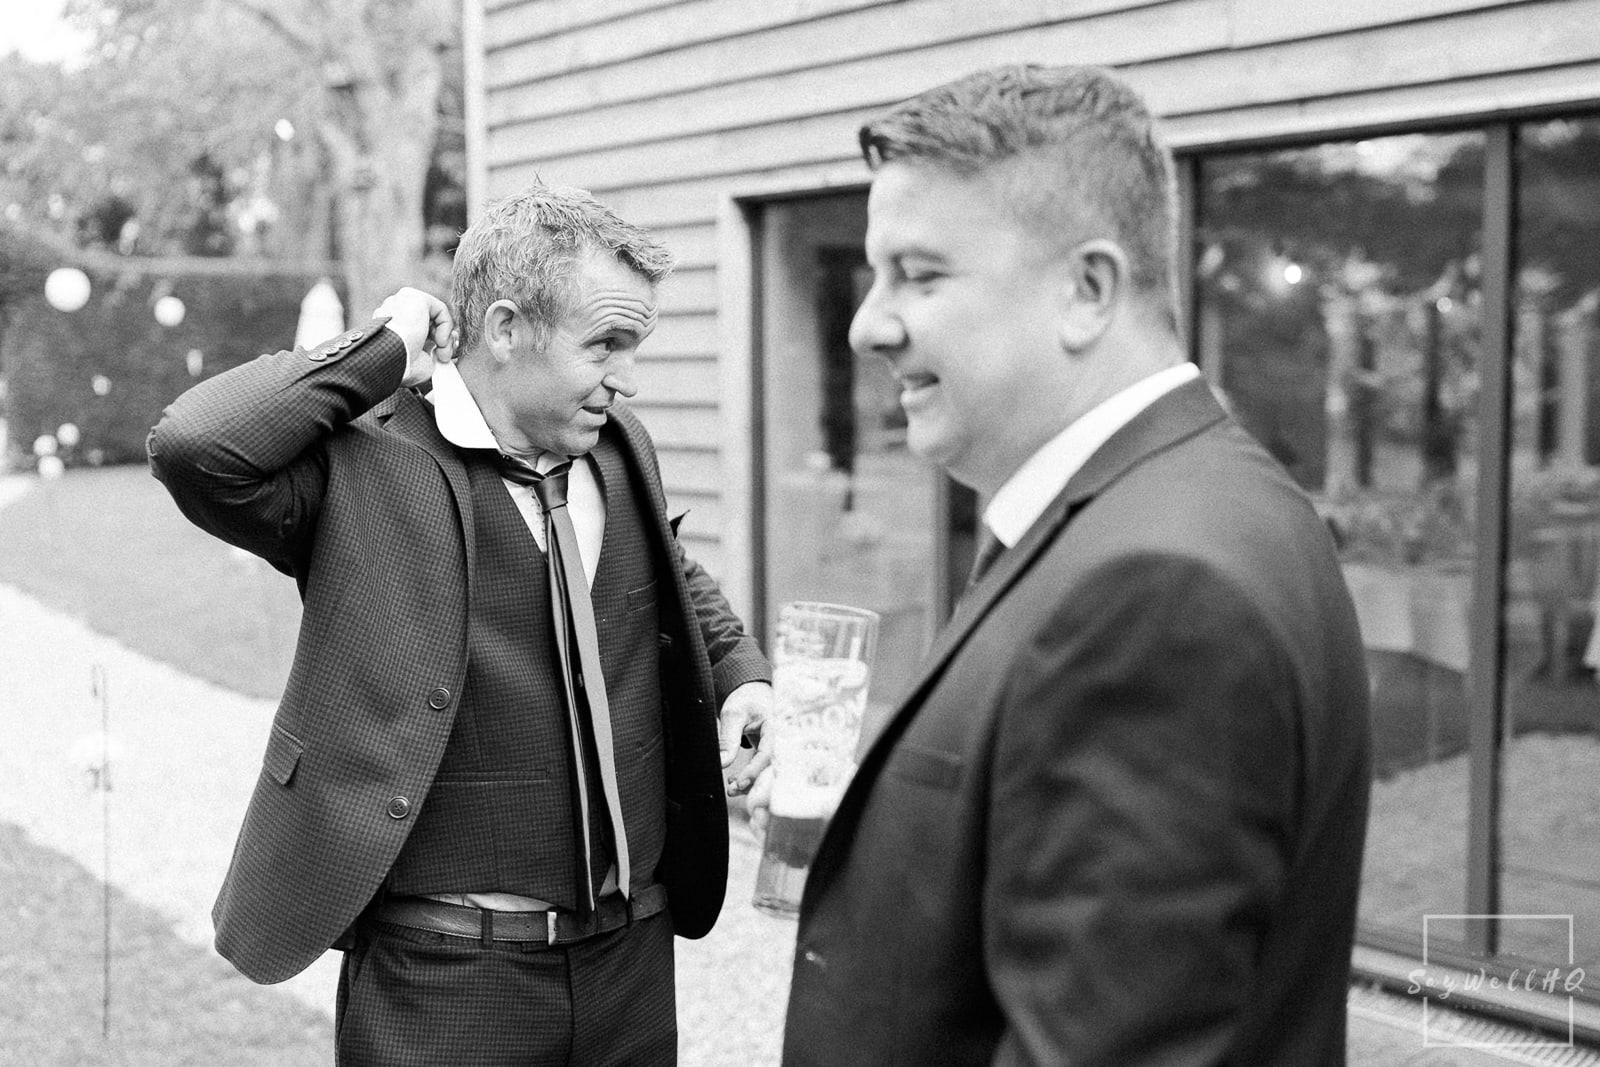 The Chequers Inn Wedding Photography - wedding guests arrive for the wedding